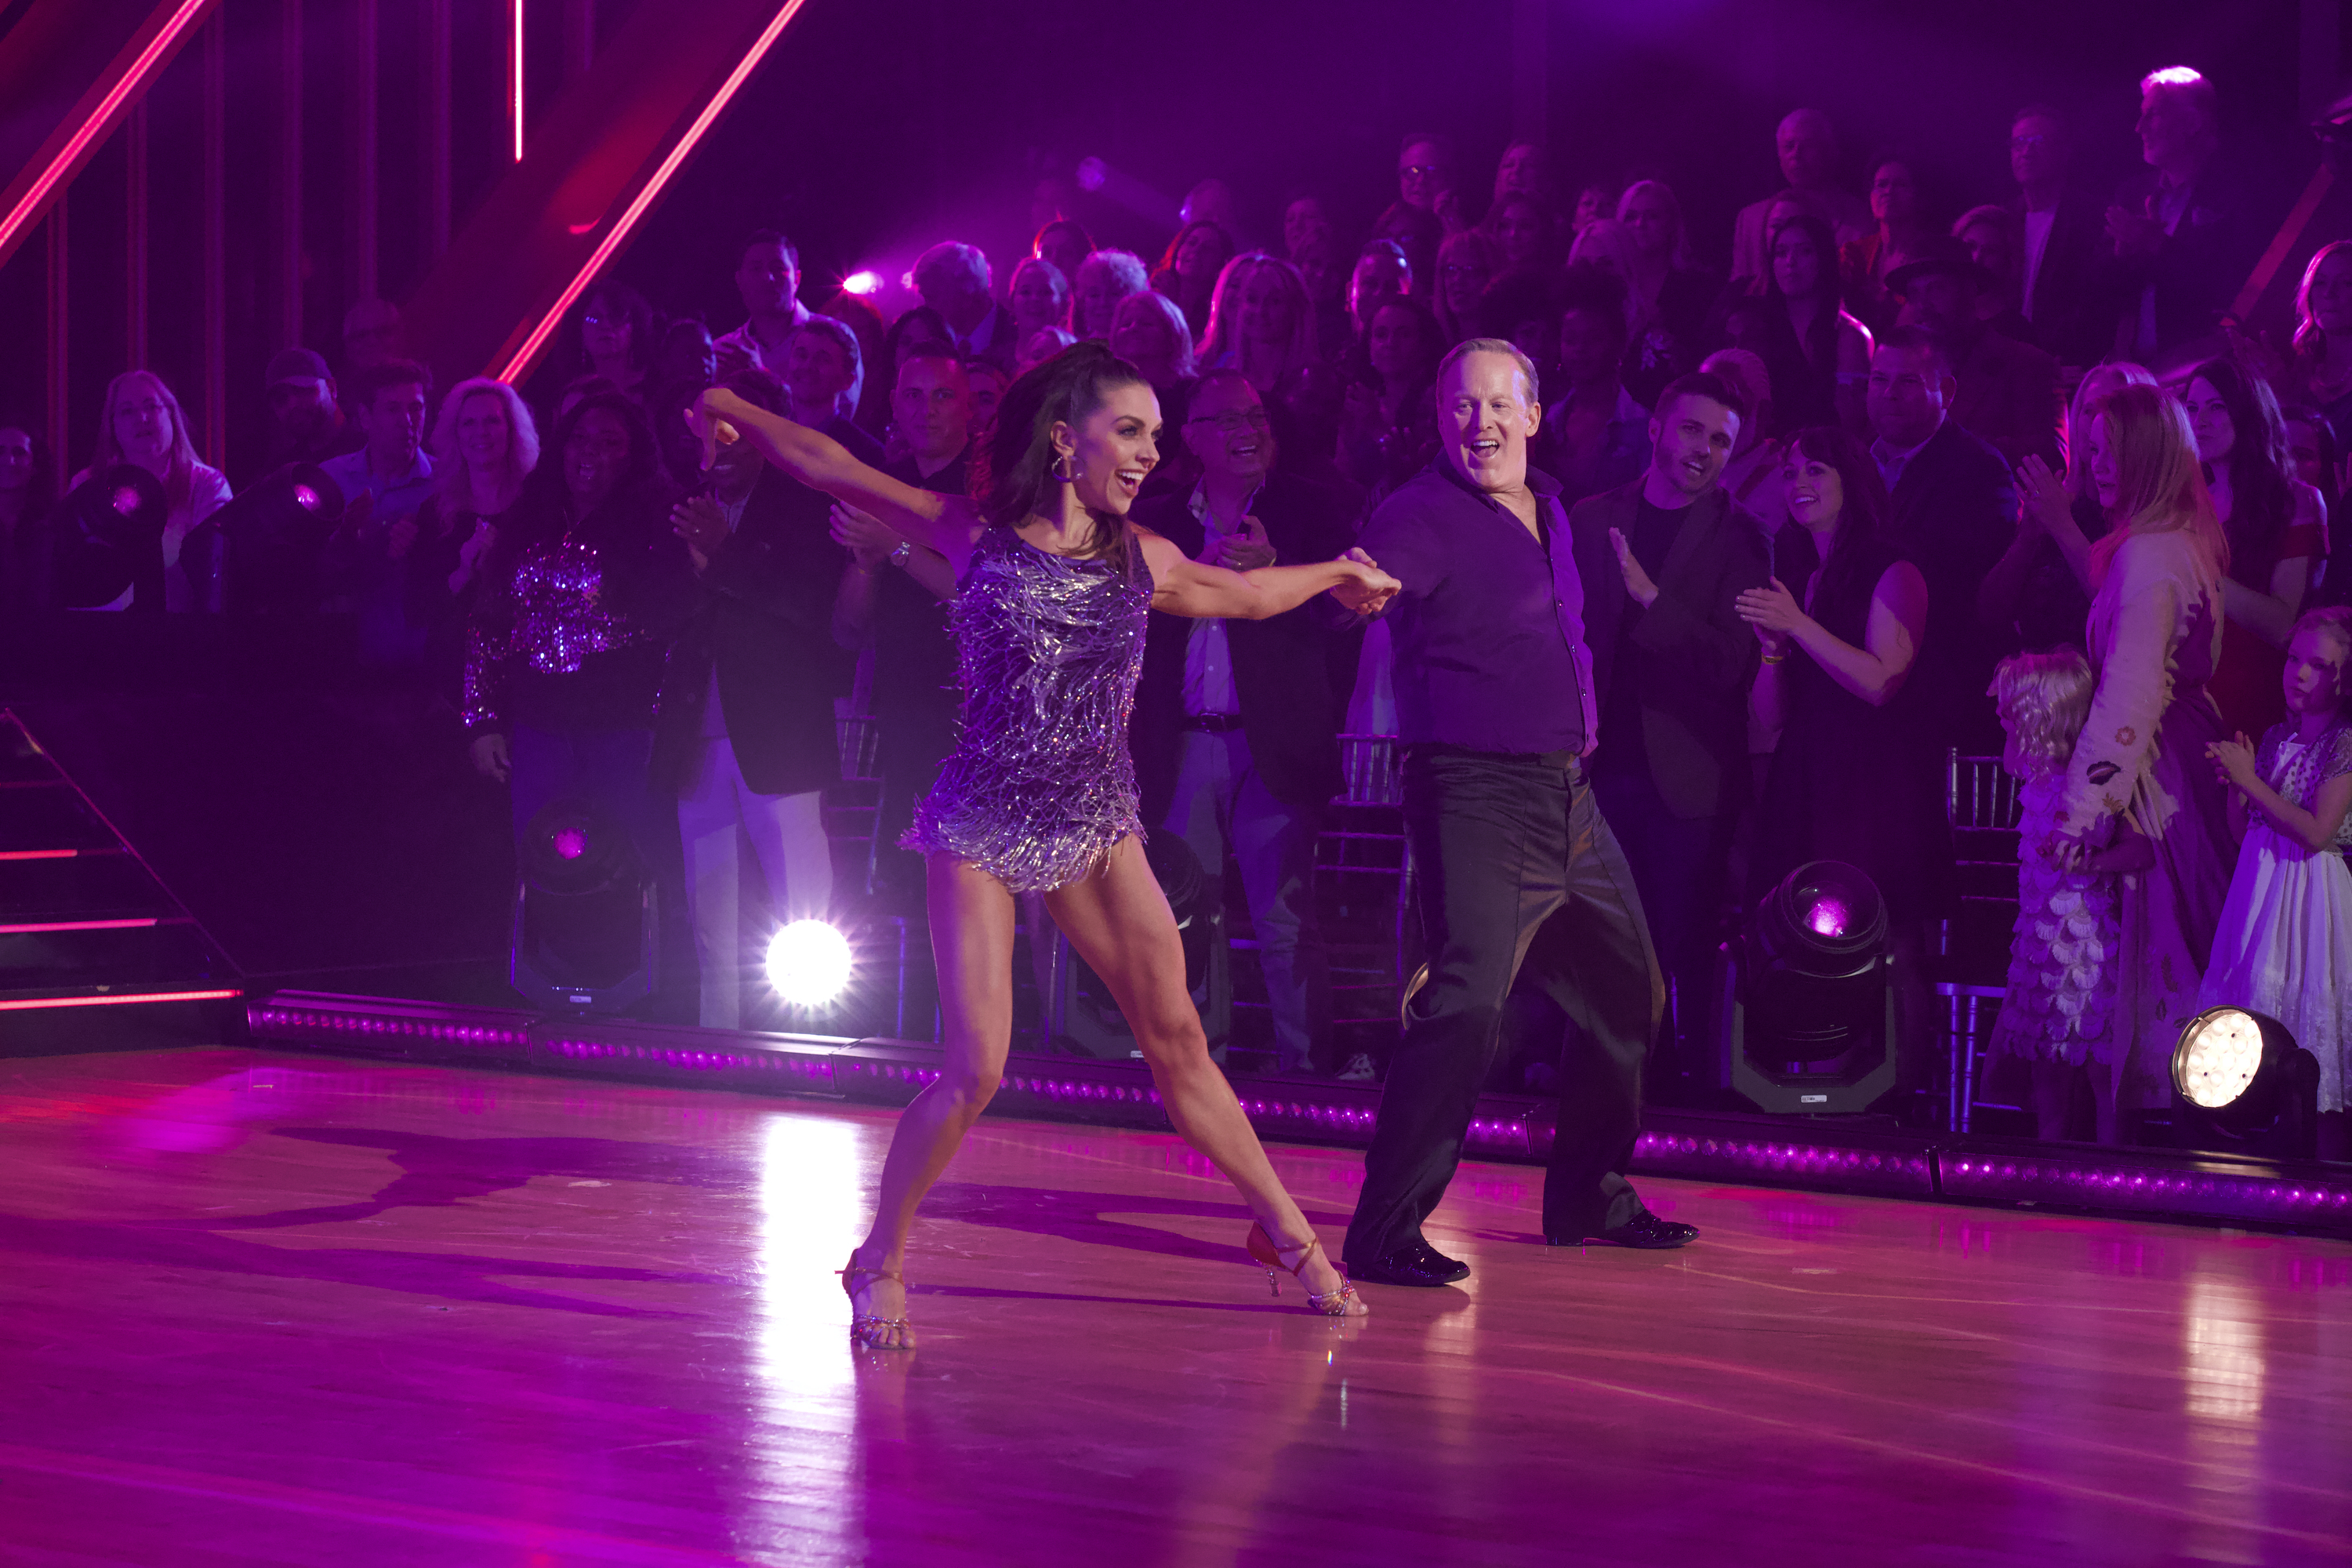 Sean Spicer defends his Dancing With the Stars success: If youre looking for the best, this is not the show